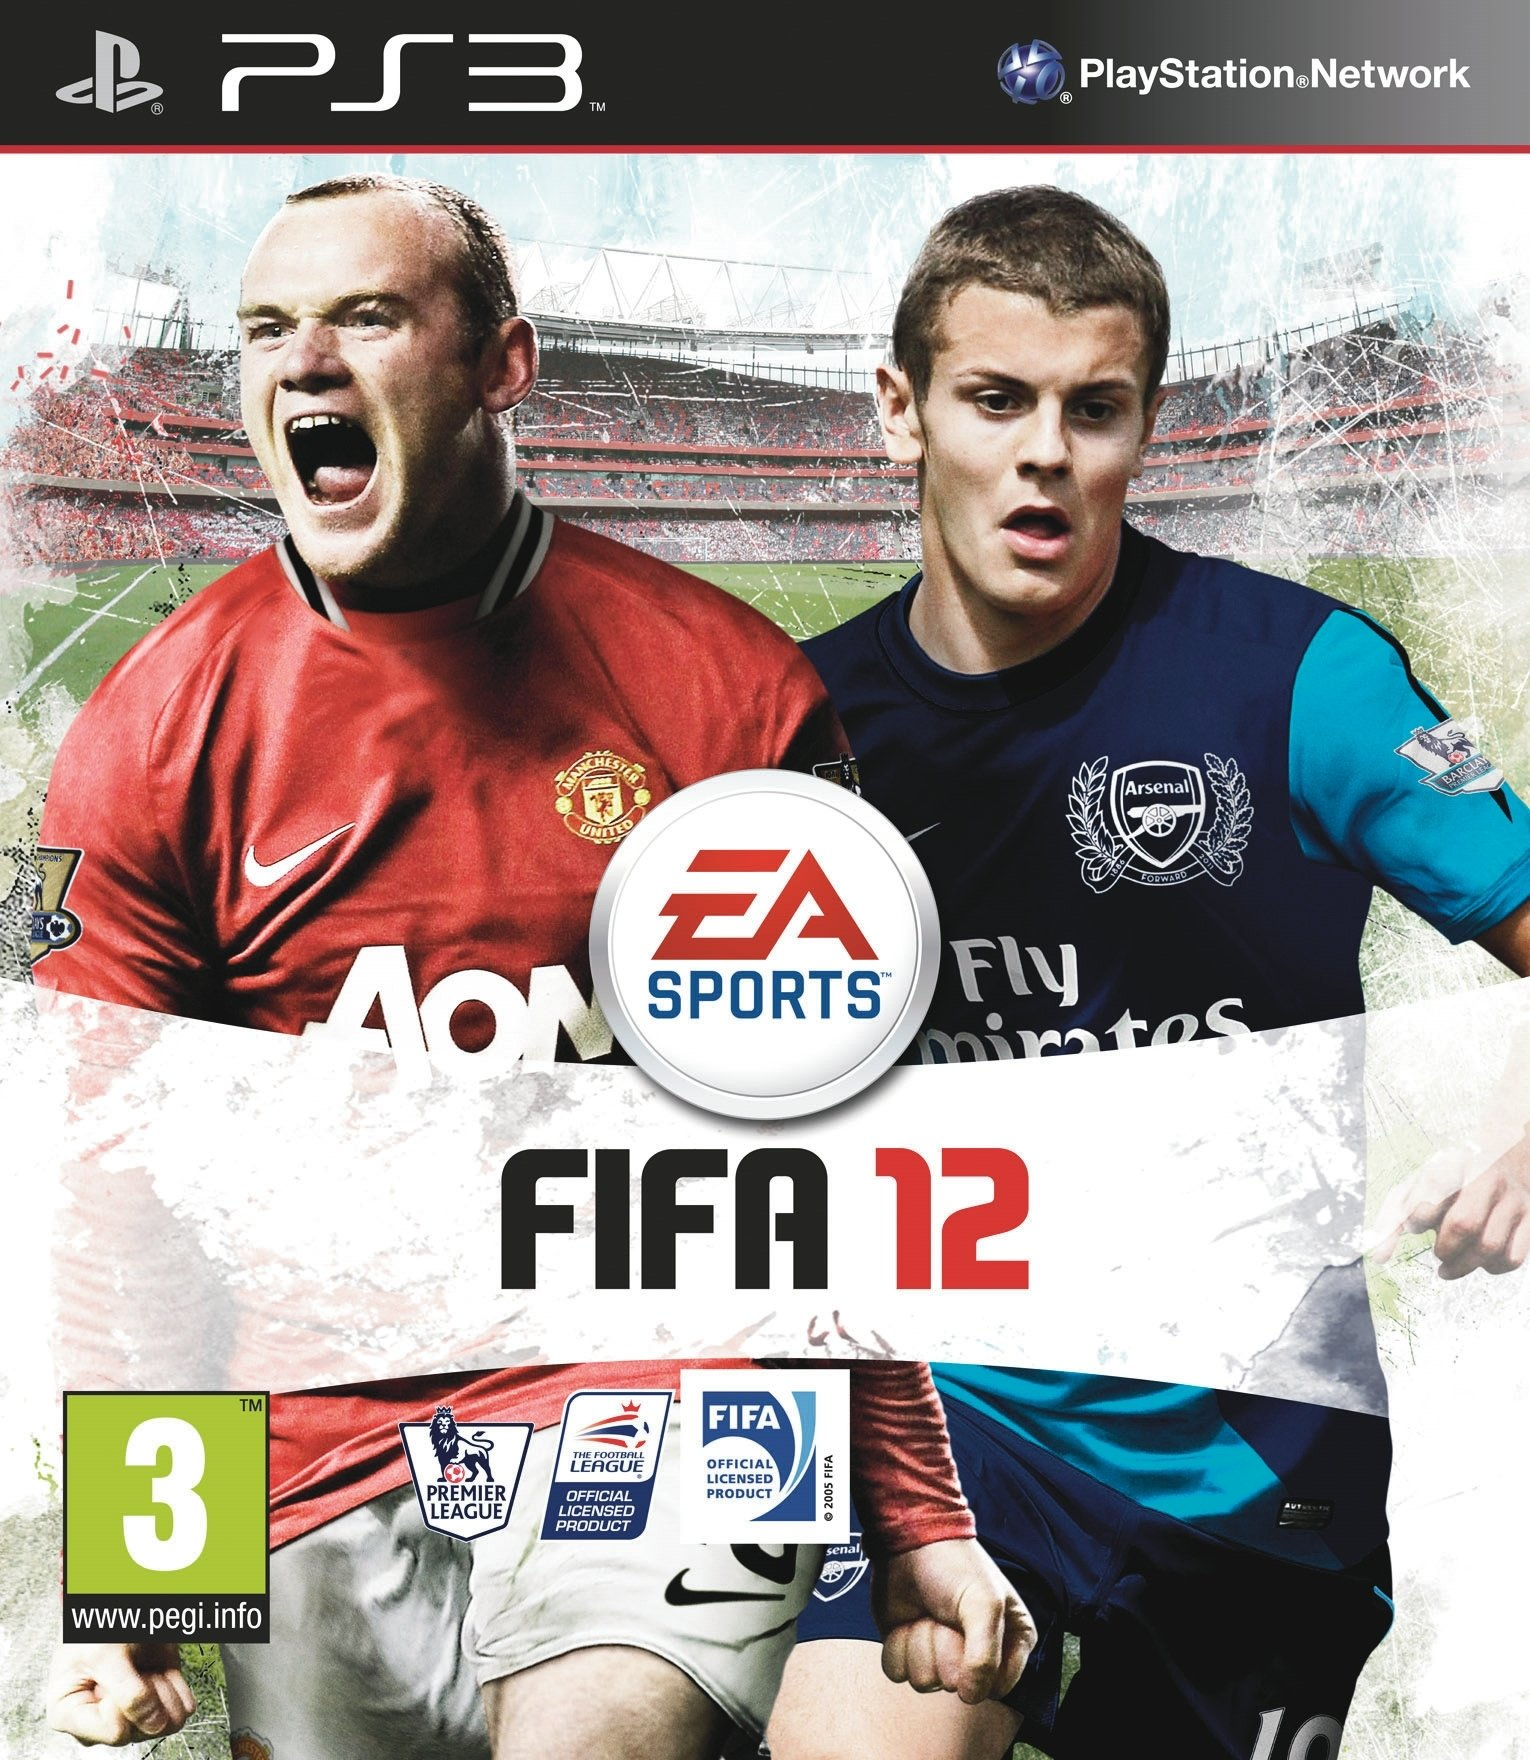 FIFA 12 Windows, X360, PS3, PSP, Wii game - Mod DBPs3 Games List 2012